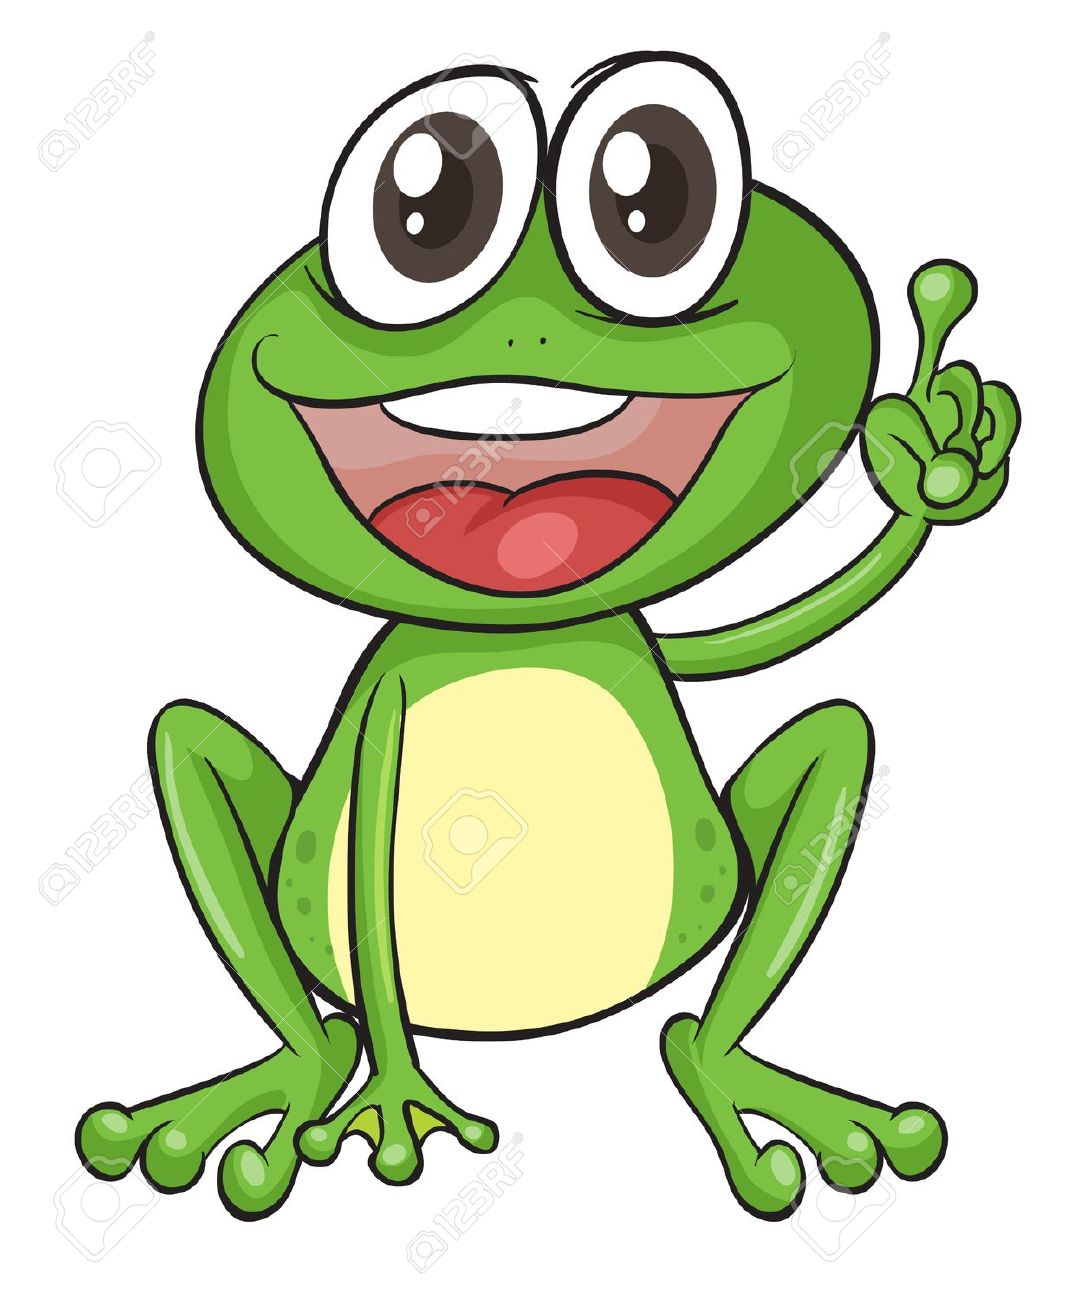 1085x1300 Free Frog Clip Art Drawings And Colorful Images 2 Image 8 2